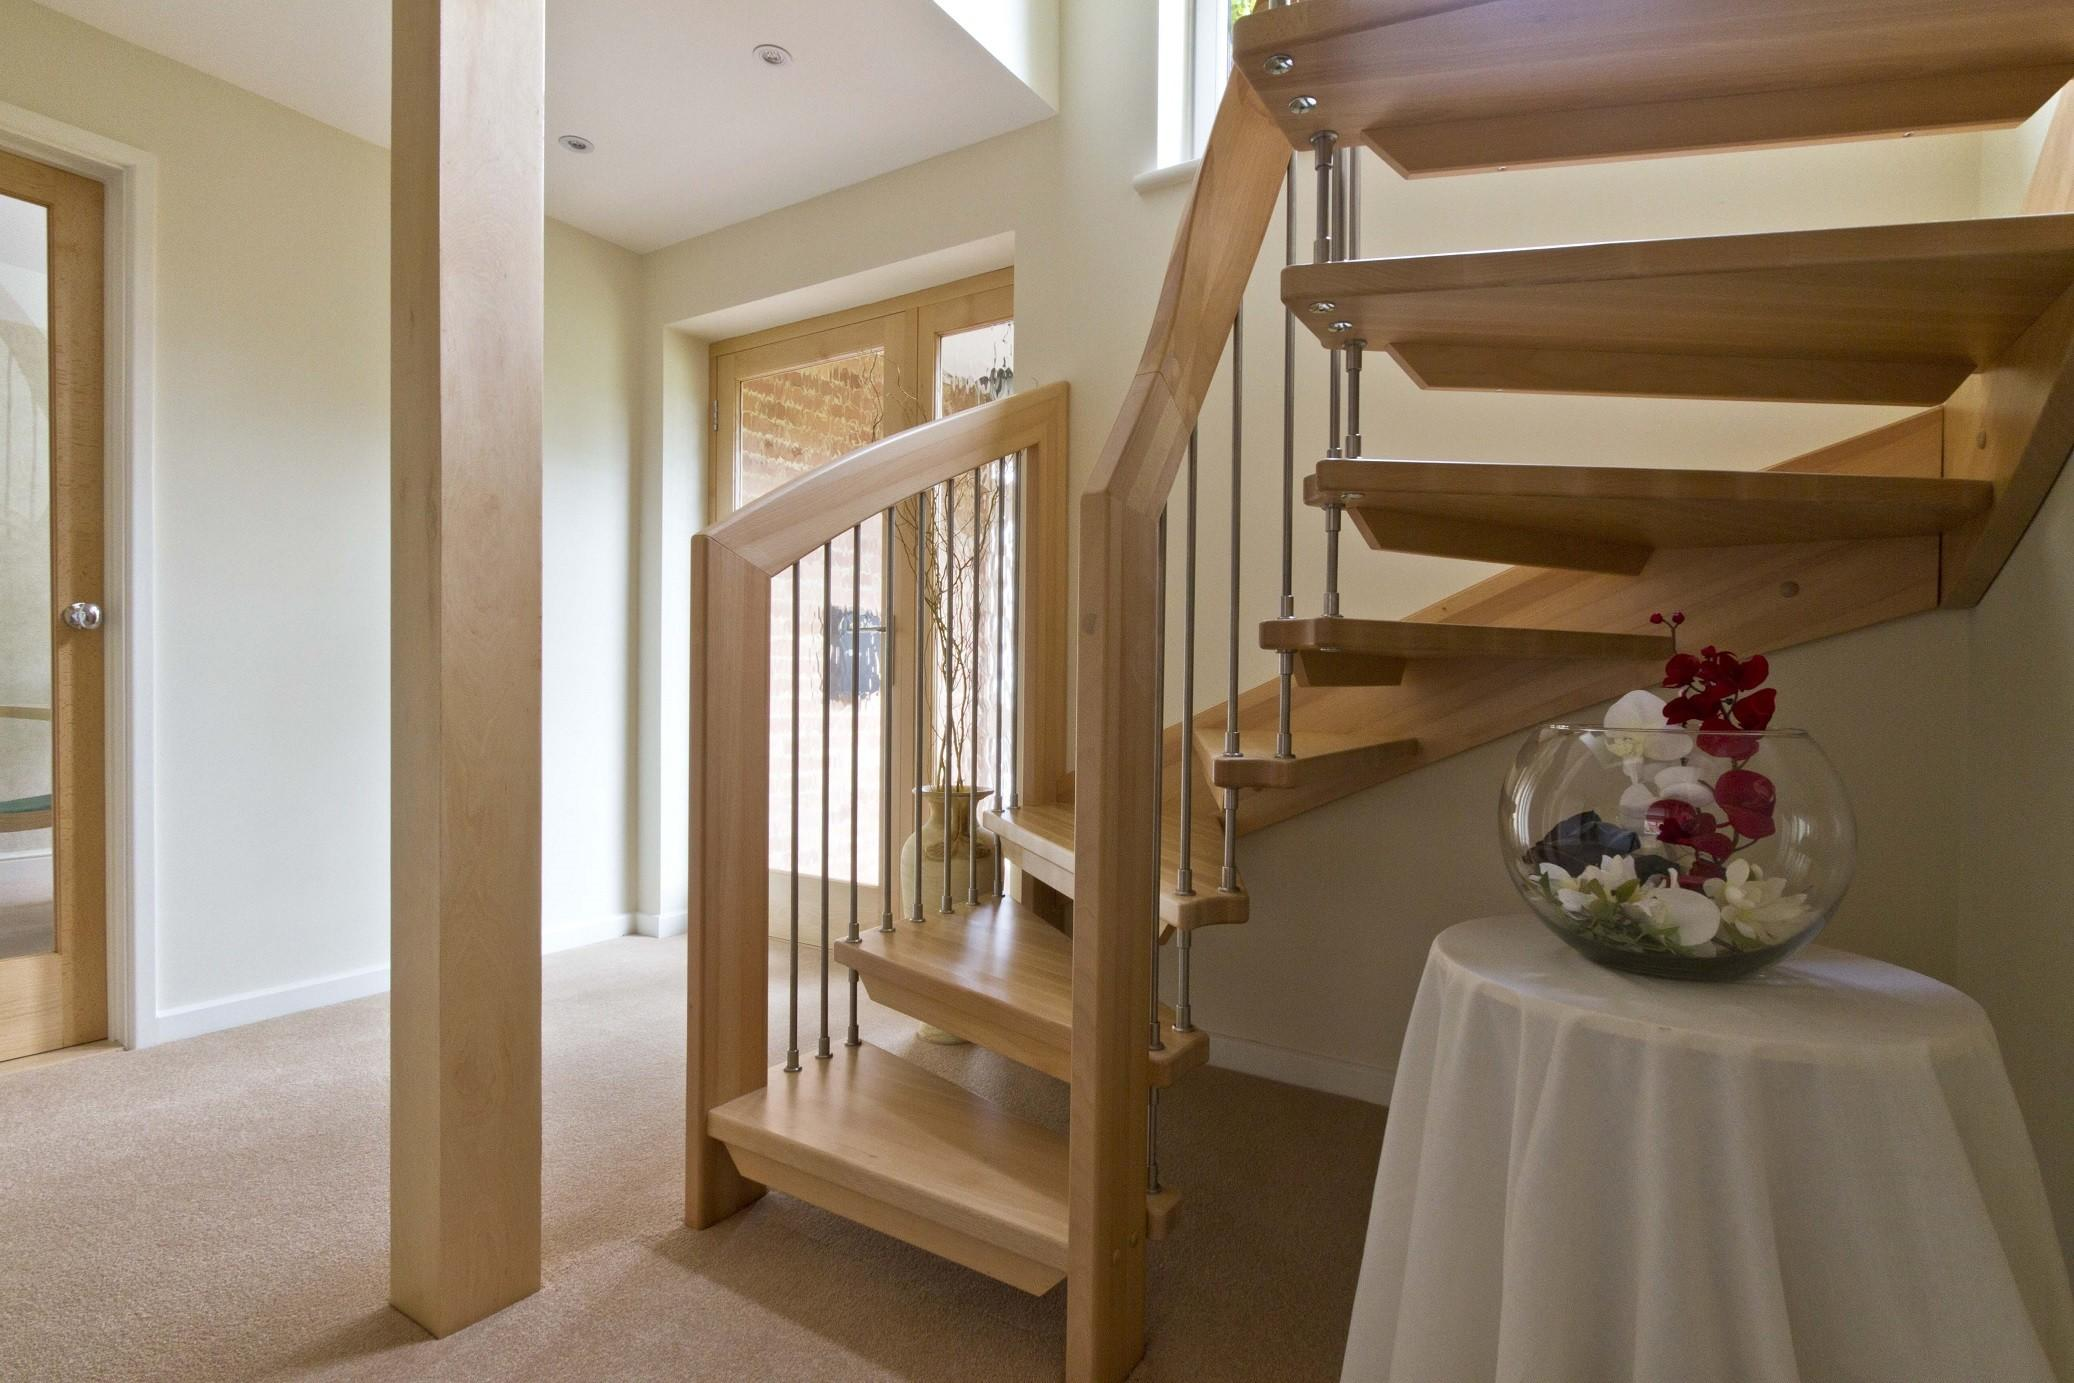 Enchanting Wooden Steps Open Staircase White Round